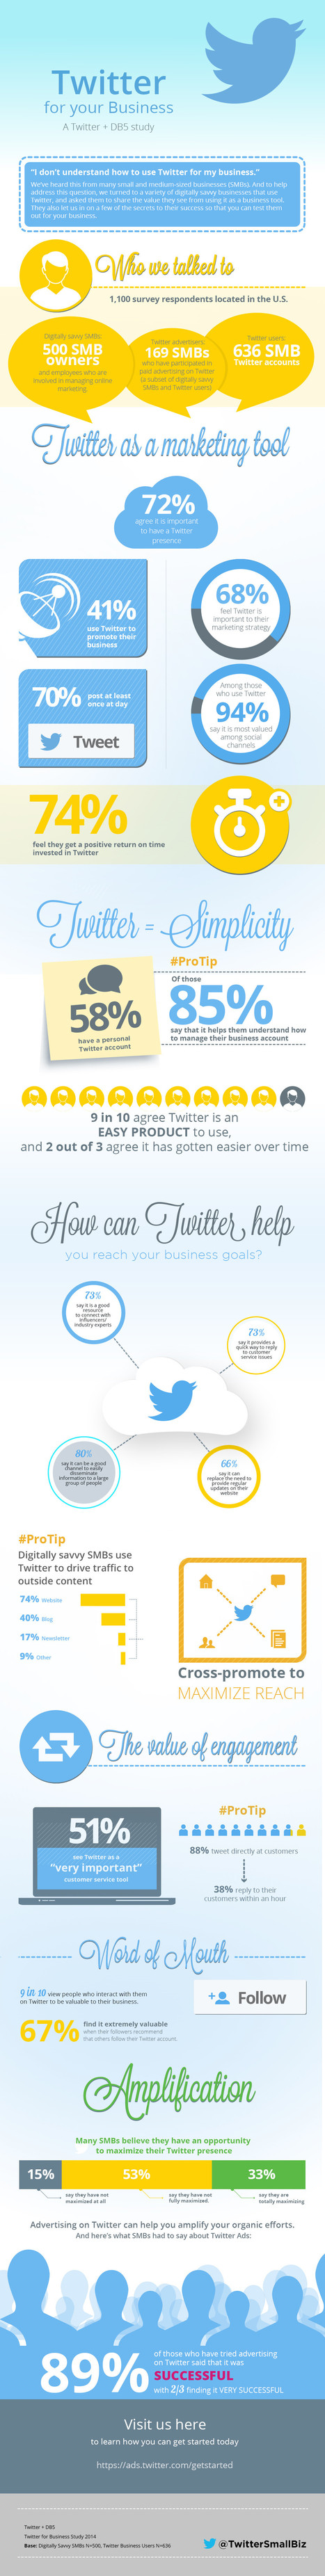 How To Use Twitter For Your Business - infographic - Digital Information World | SIC | Scoop.it